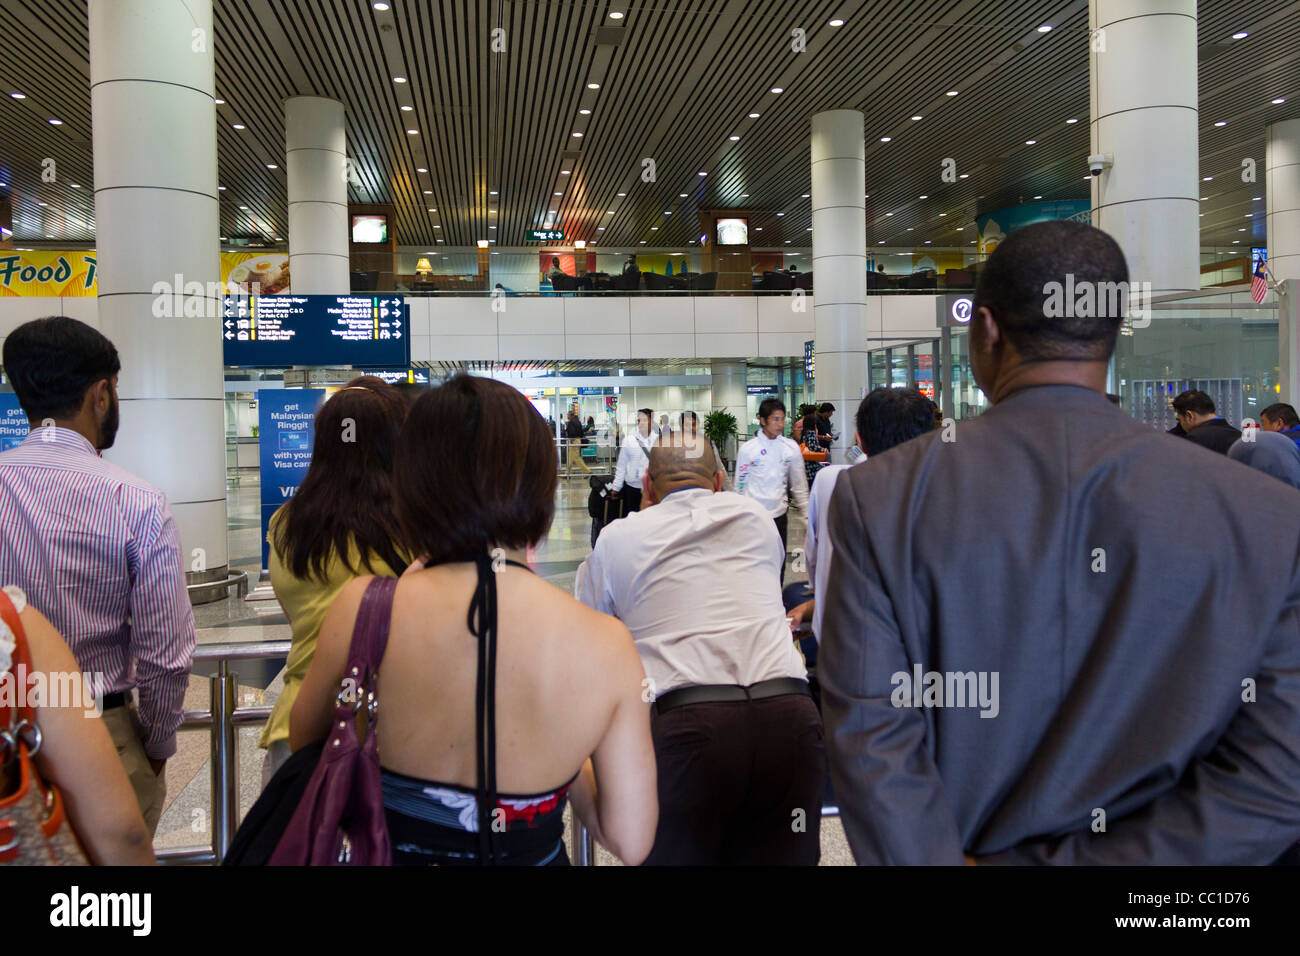 people waiting at the arrivals hall, Kuala Lumpur International airport, Malaysia - Stock Image